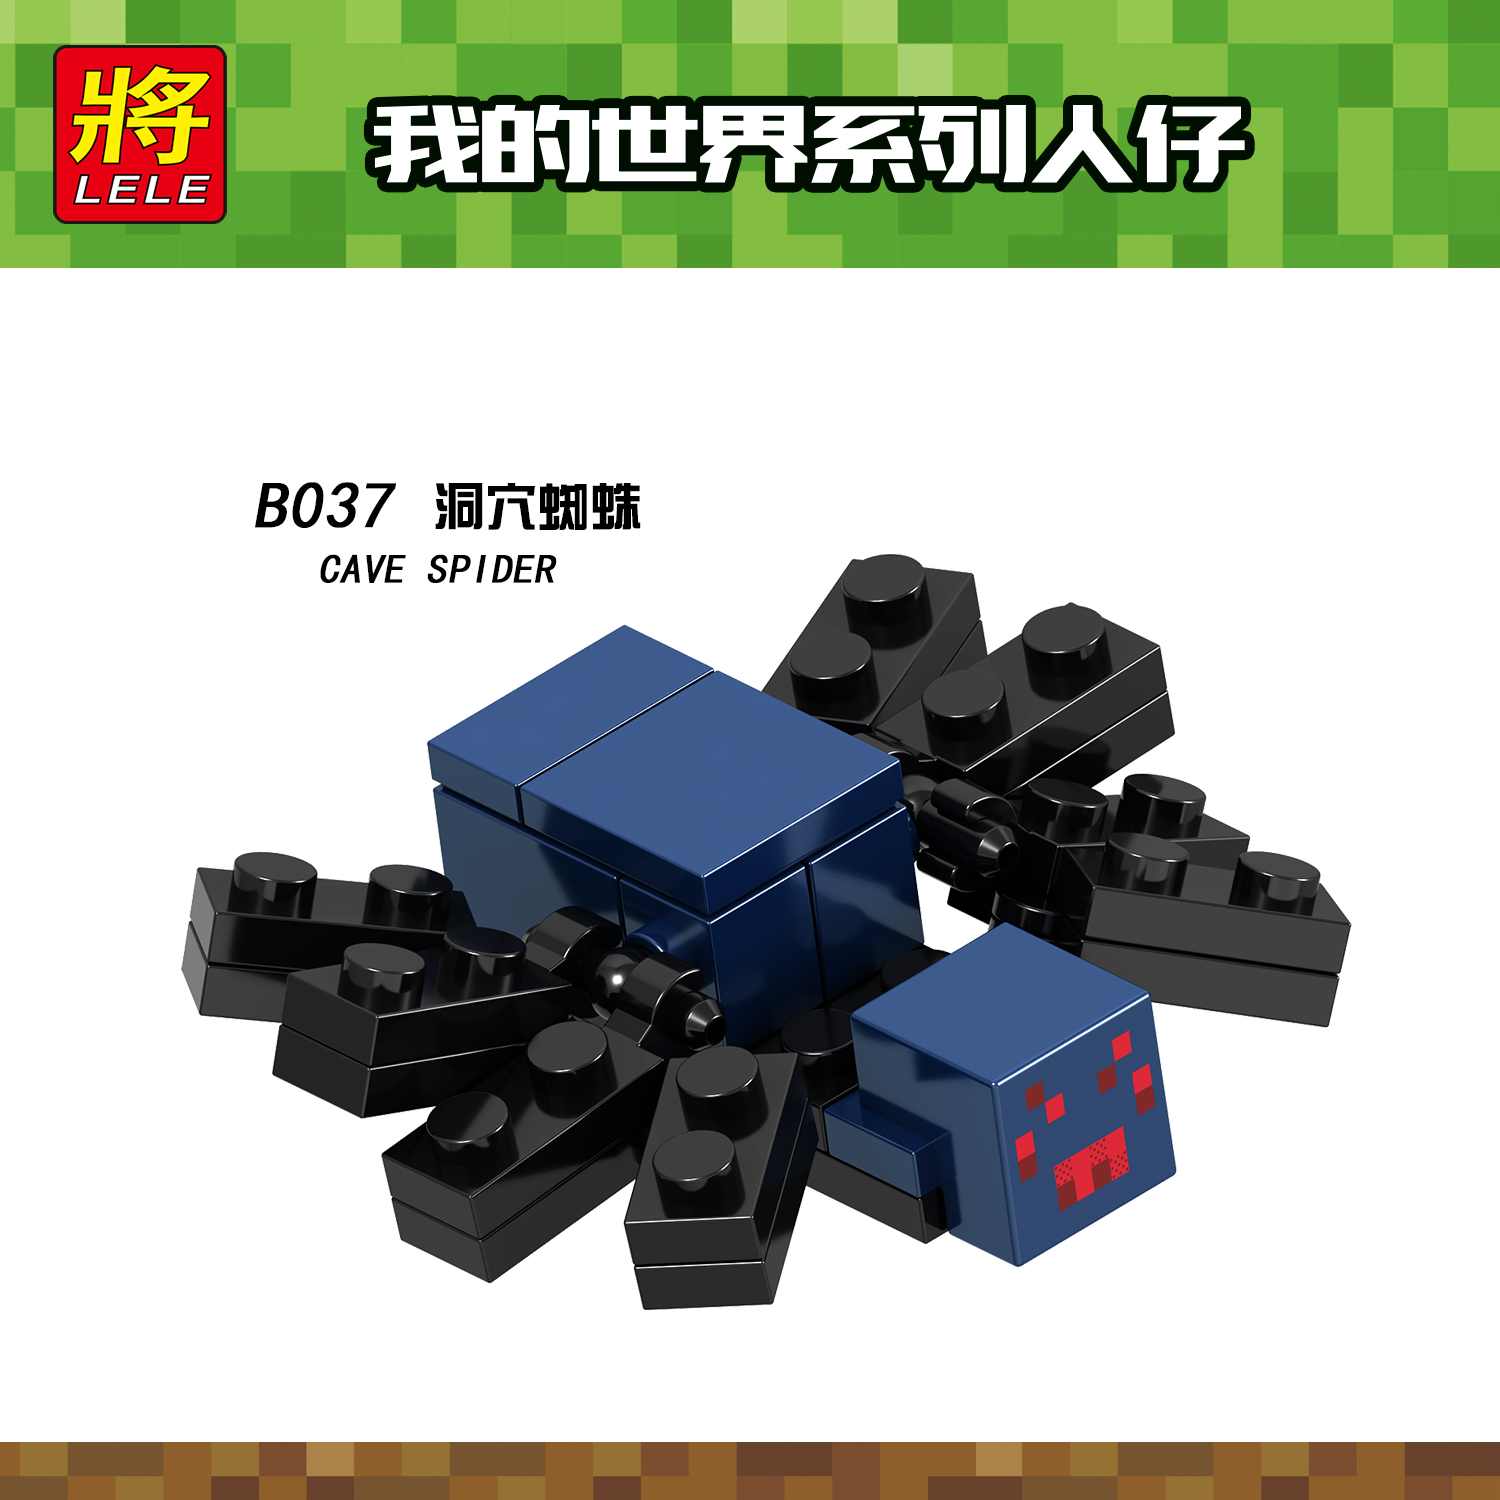 Toys & Hobbies Nice Minecraft Enderman End Man Legoing Figures Zombie Creeper Spider Cave Skeleton Wither Ghast Magma Cube Polarbear Bat Iron Golem Moderate Cost